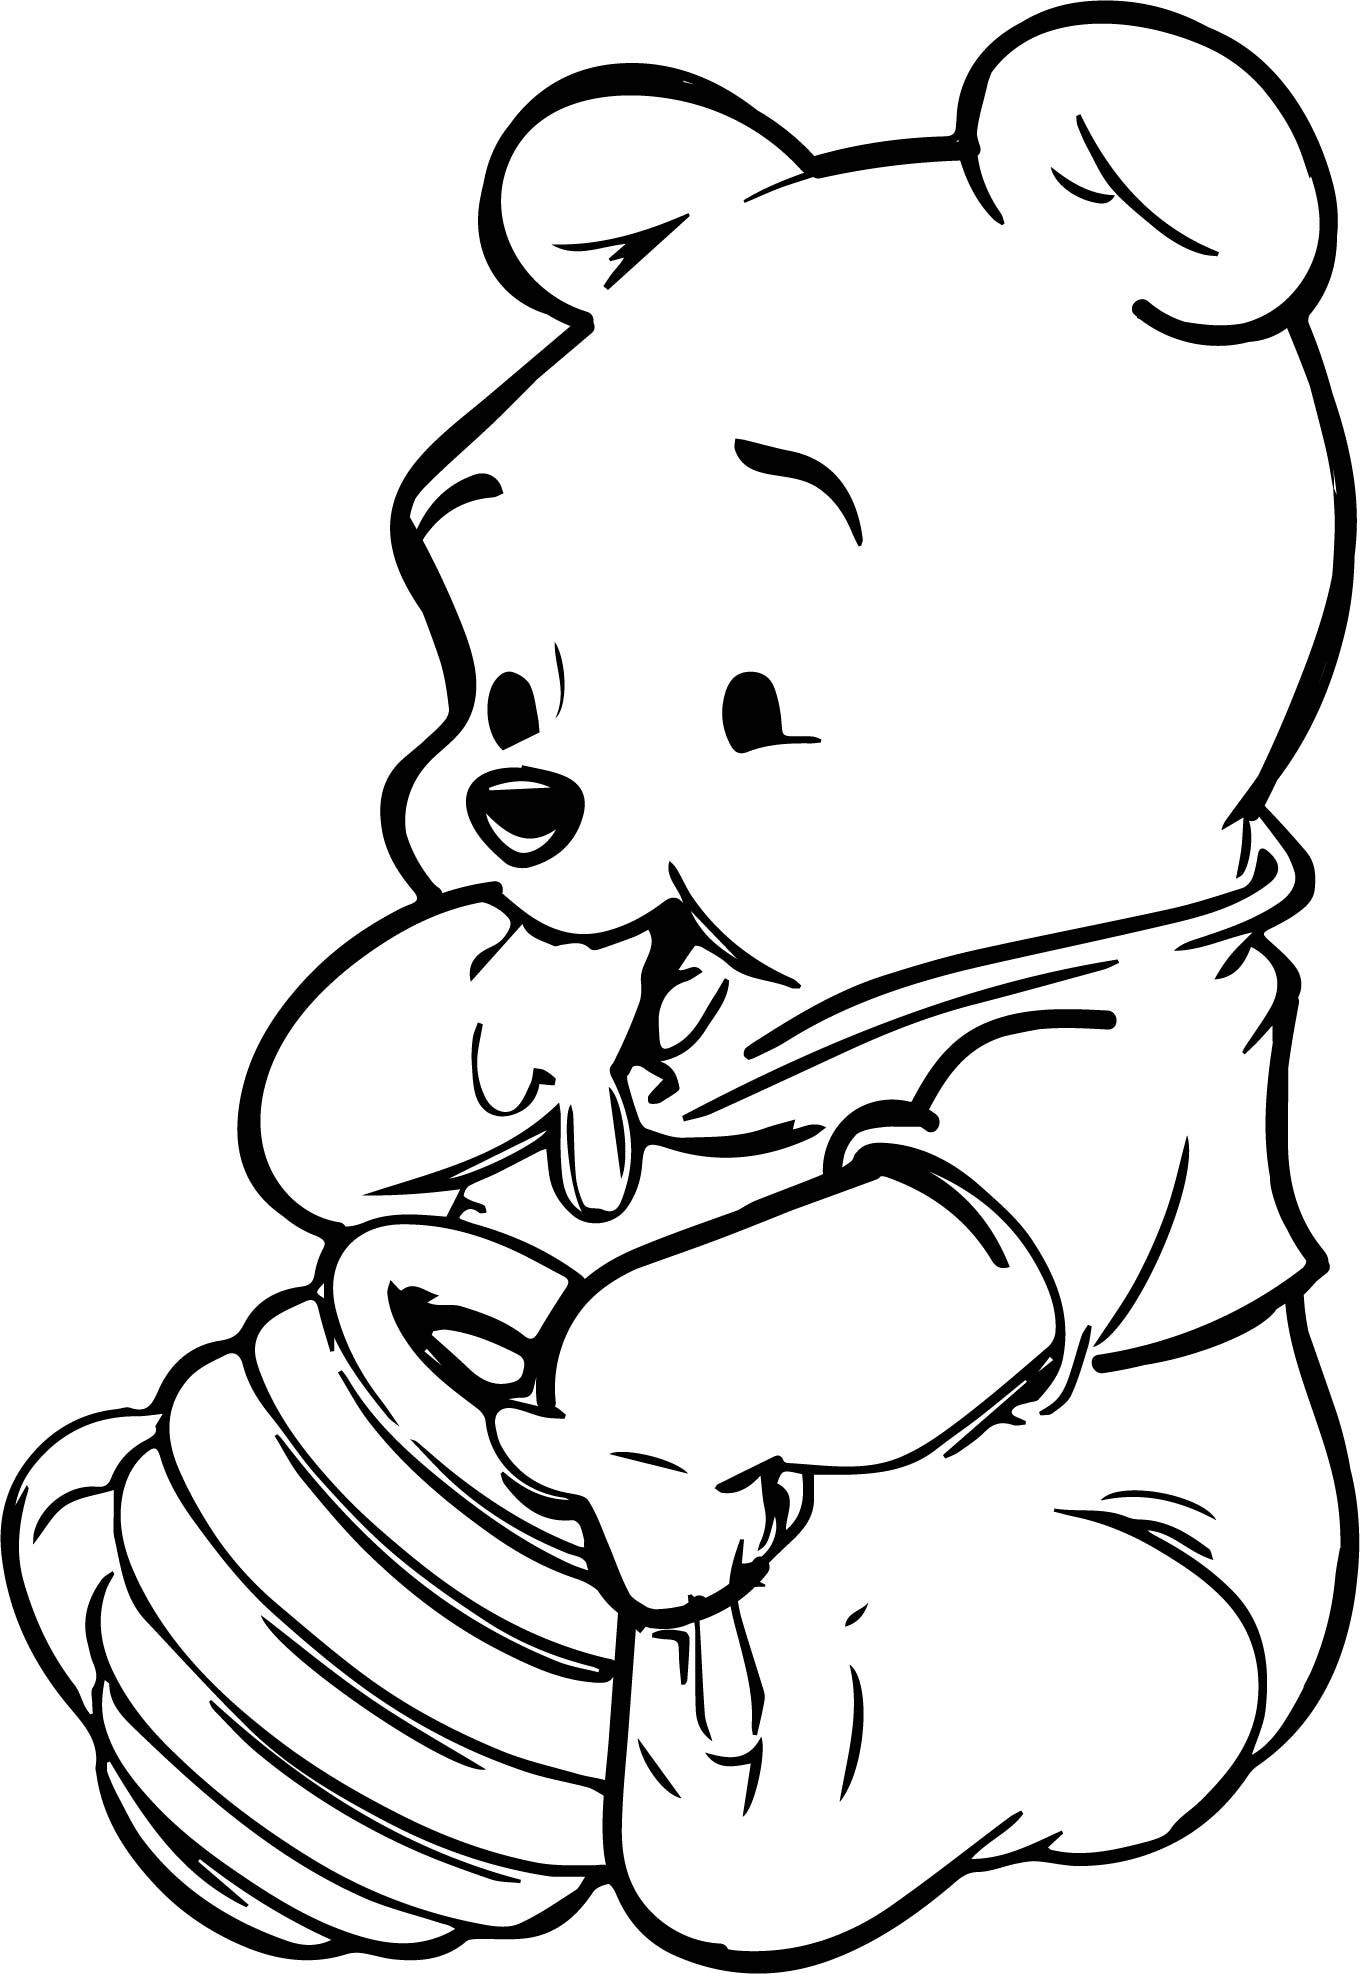 Winnie The Pooh Coloring Pages Coloring Rocks Winnie The Pooh Drawing Whinnie The Pooh Drawings Winnie The Pooh Tattoos